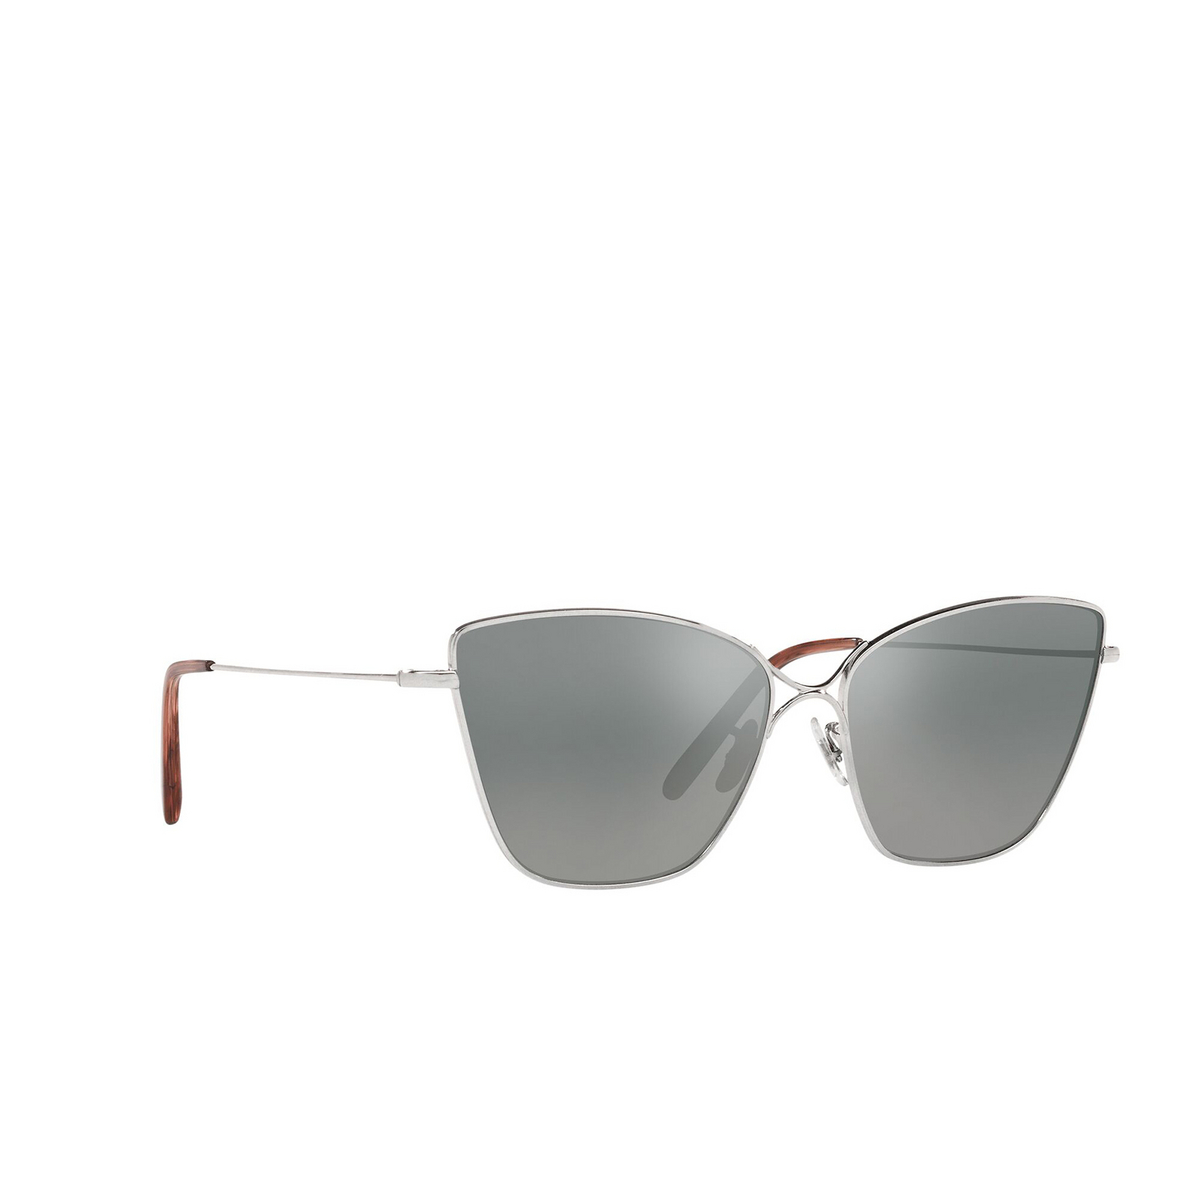 Oliver Peoples® Butterfly Sunglasses: Marlyse OV1288S color Silver 50366I - three-quarters view.